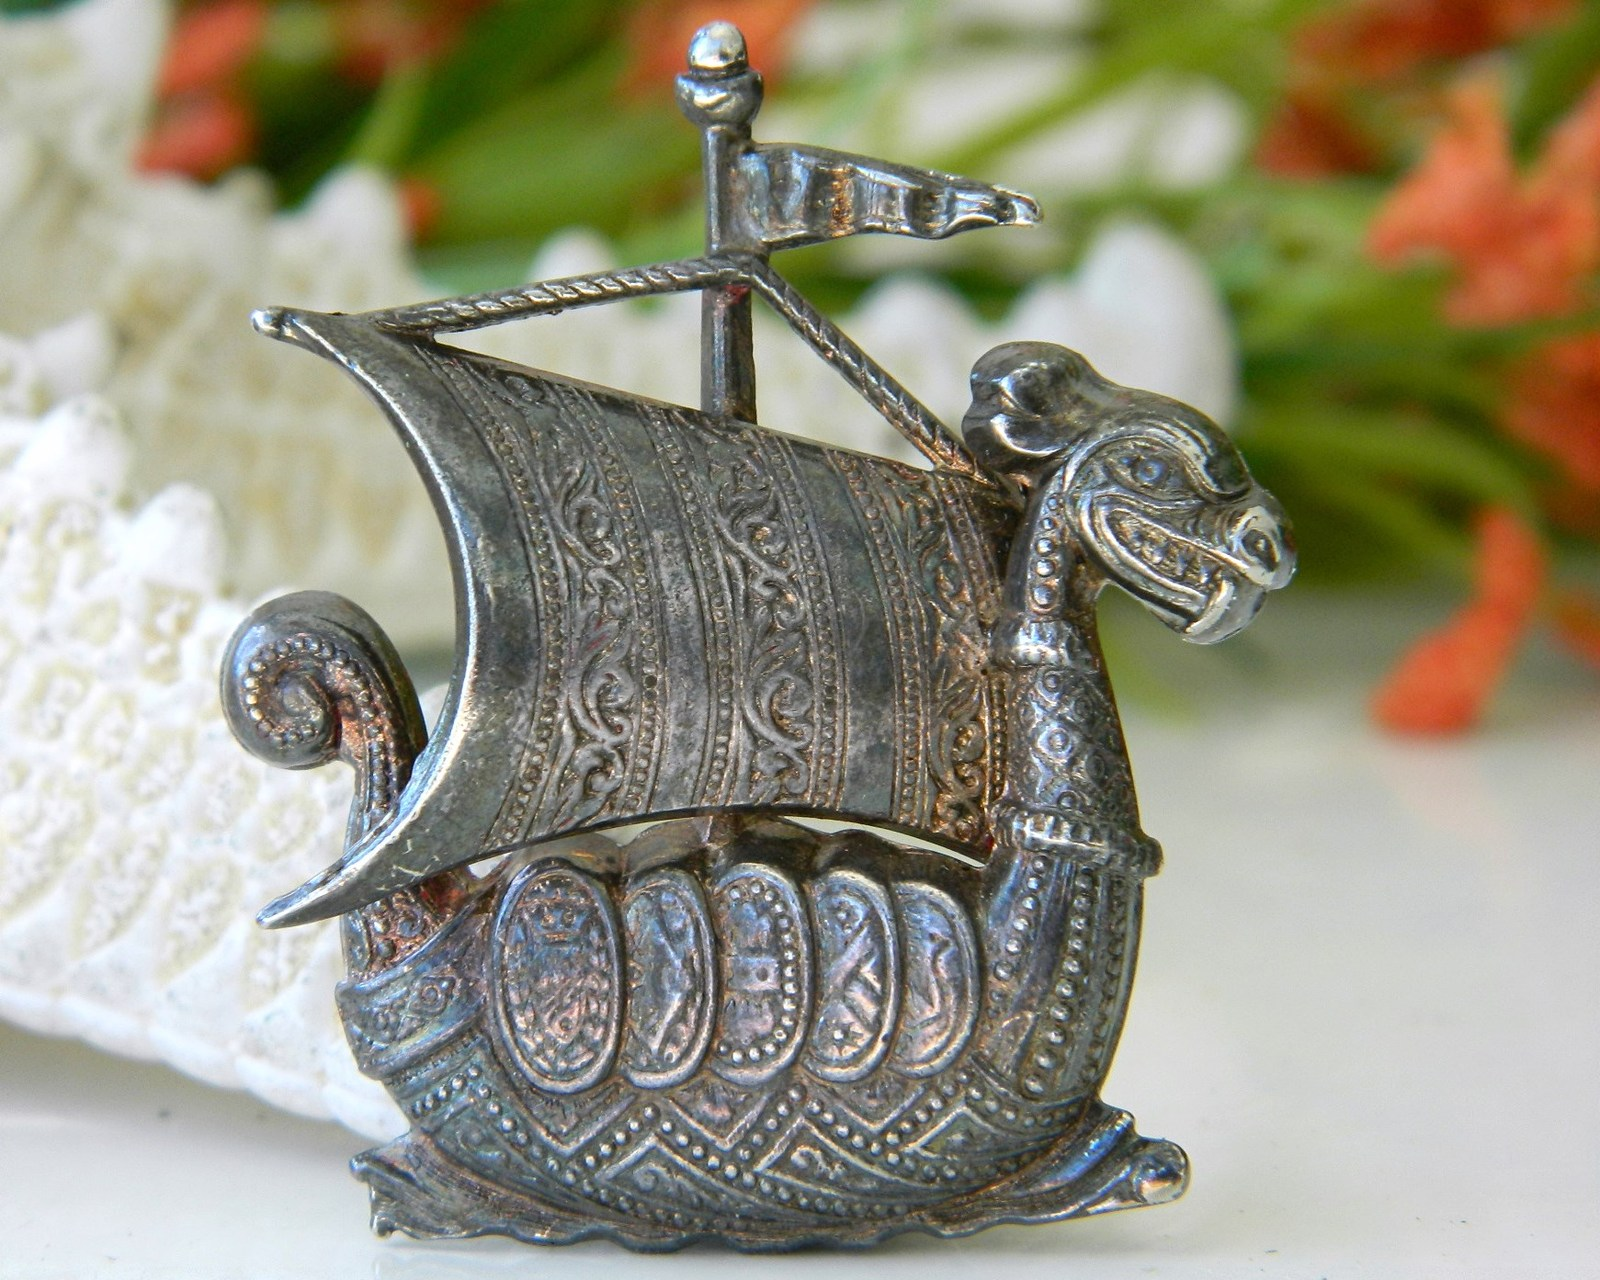 Dragon Viking Ship Sailboat Vintage Figural Pin Brooch Spain Metal